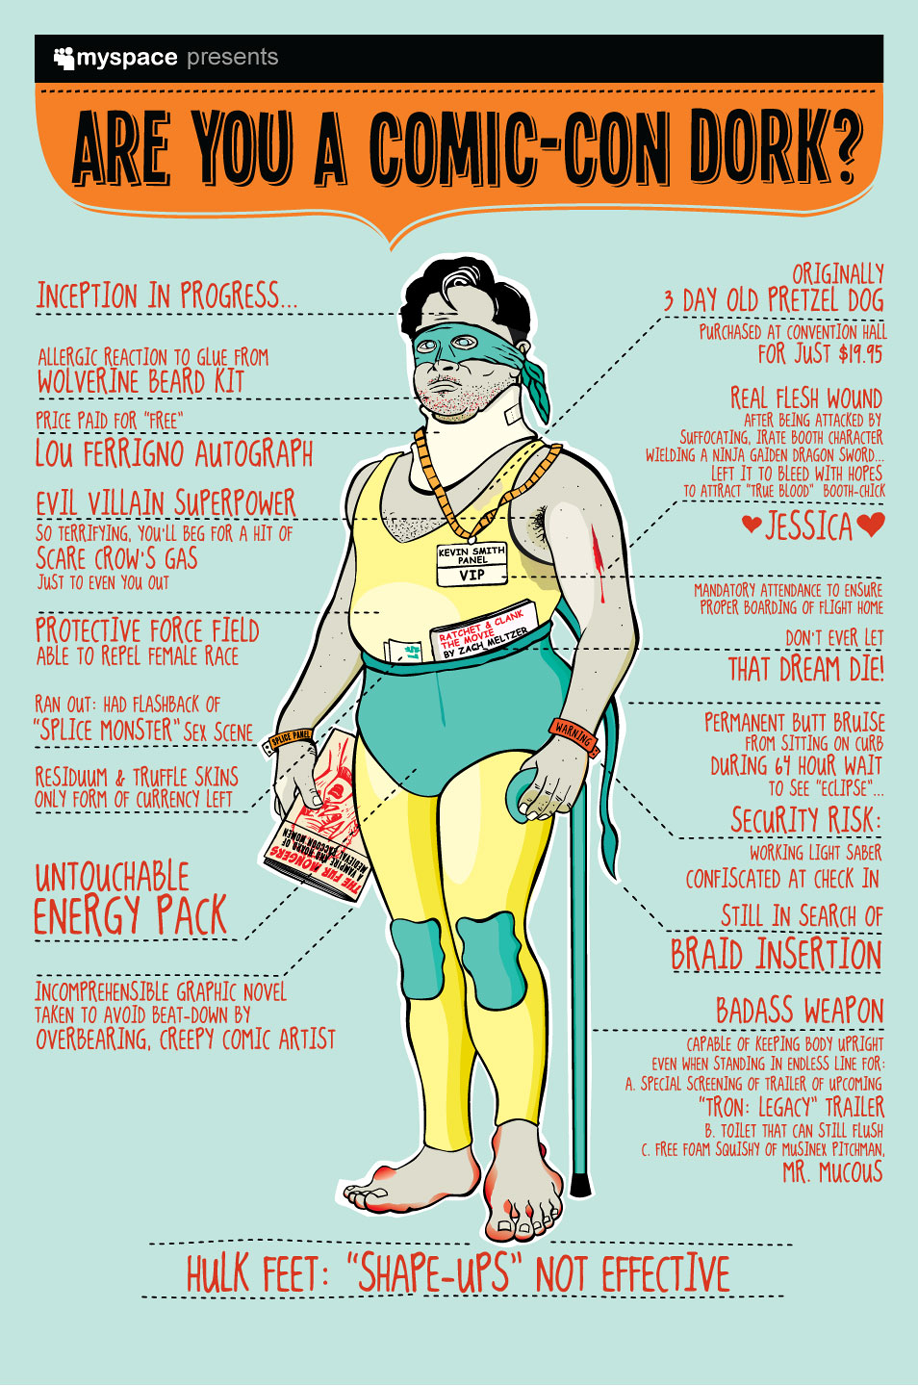 Infographic: Are You a Comic-Con Dork?